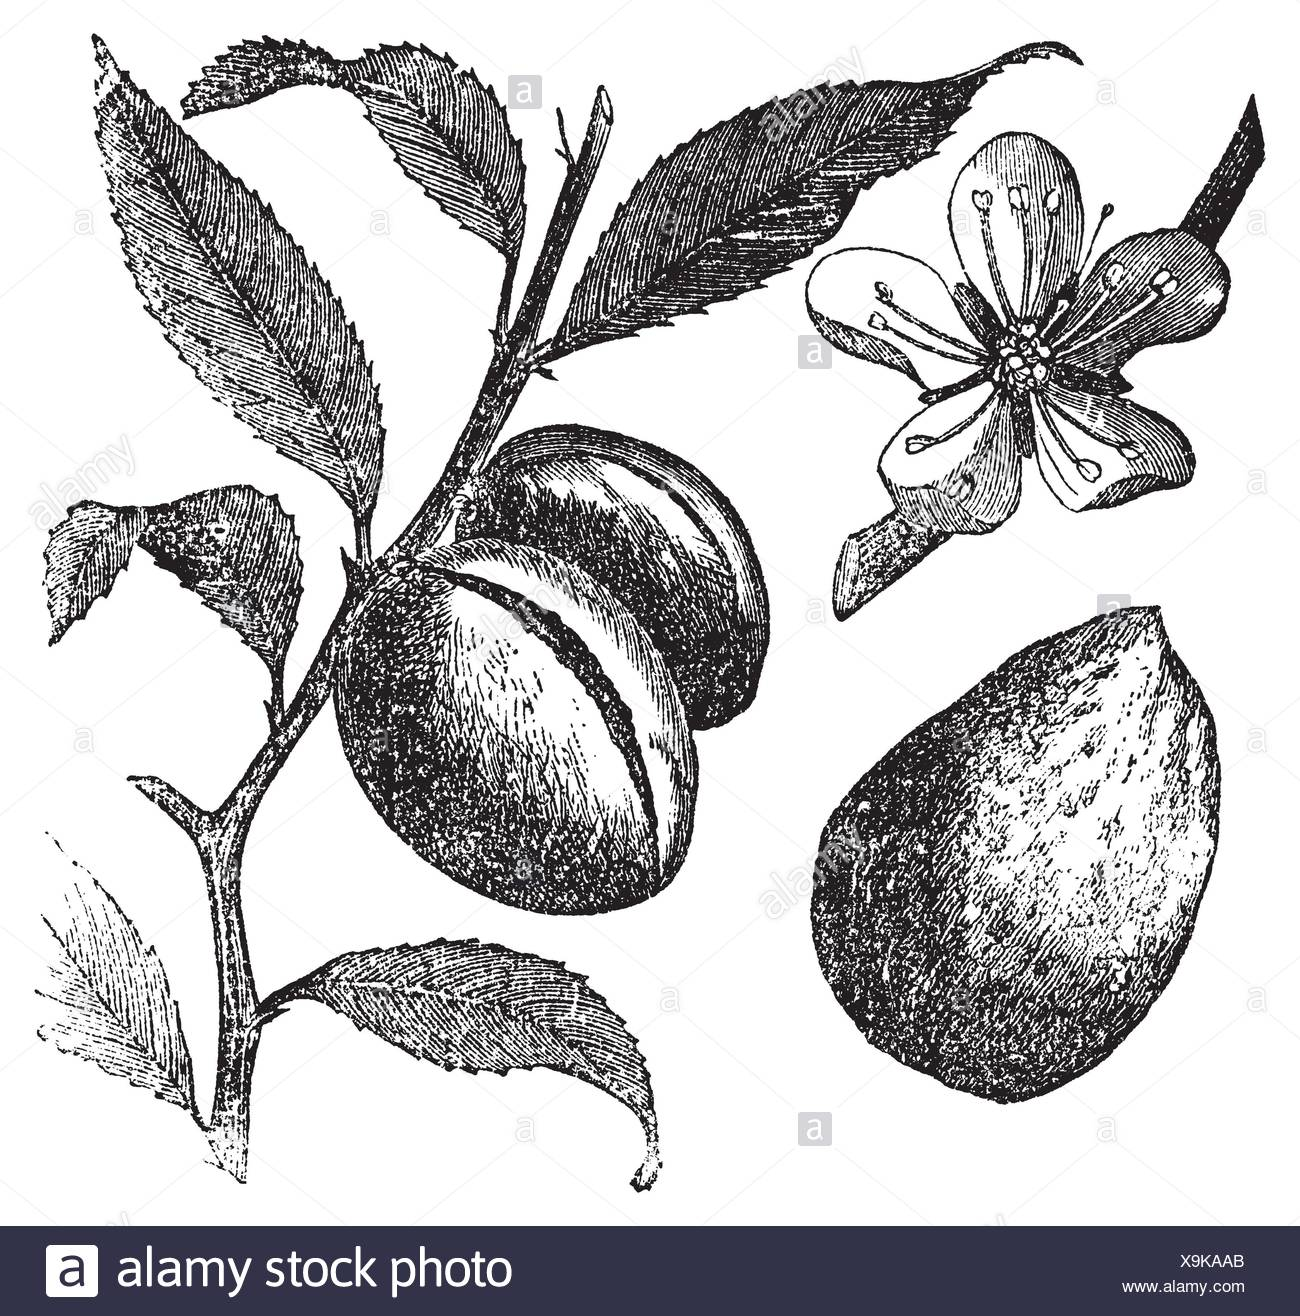 The Almond Tree Or Prunus Dulcis Vintage Engraving Fruit Flower Leaf And Almond Old Engraved Illustration Of An Almond Tree In Vector Isolated Stock Photo Alamy